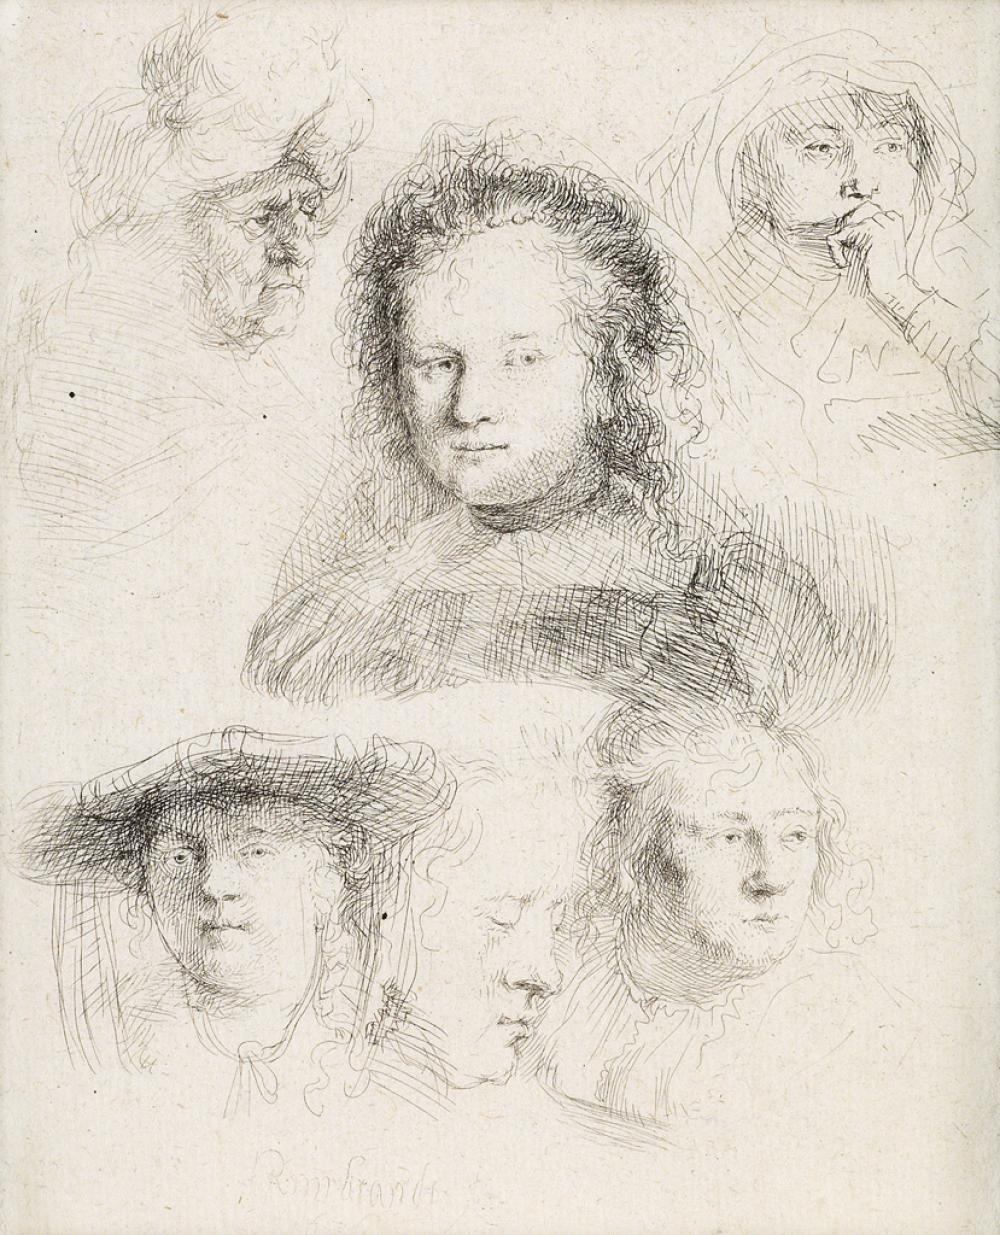 REMBRANDT VAN RIJN Studies of the Heads of Saskia and Others.